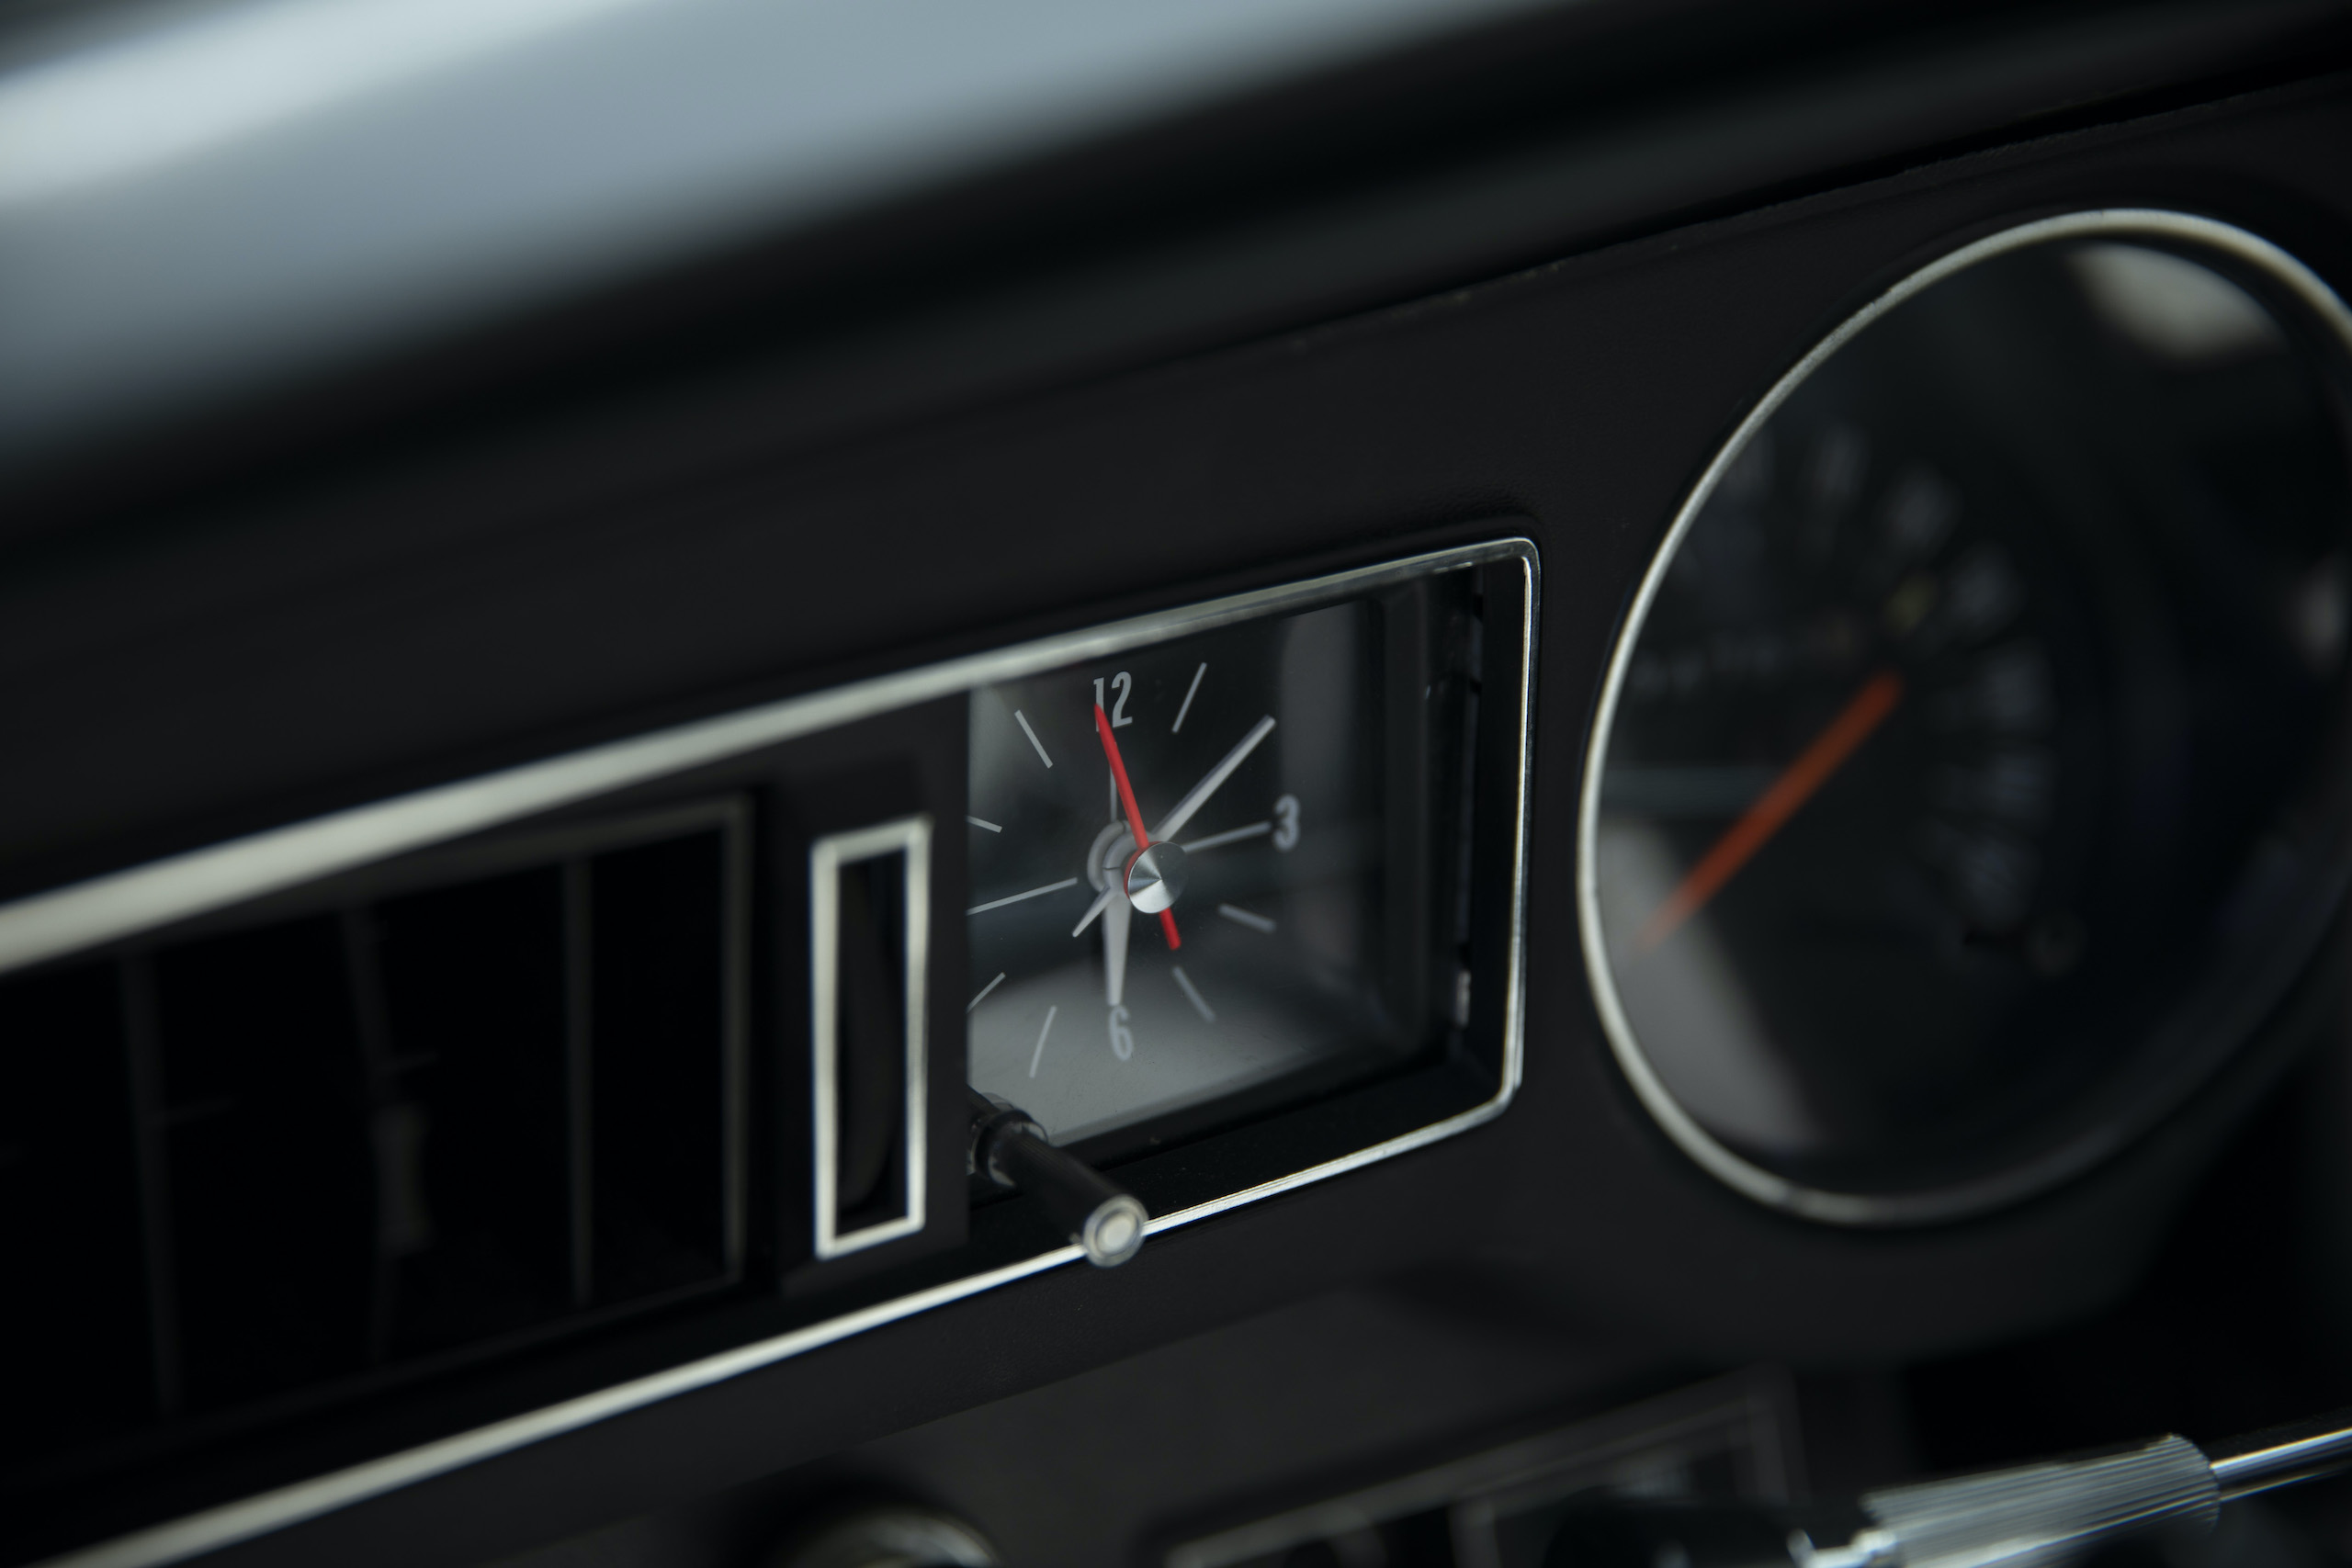 1973 Buick GS Stage 1 gran sport coupe clock